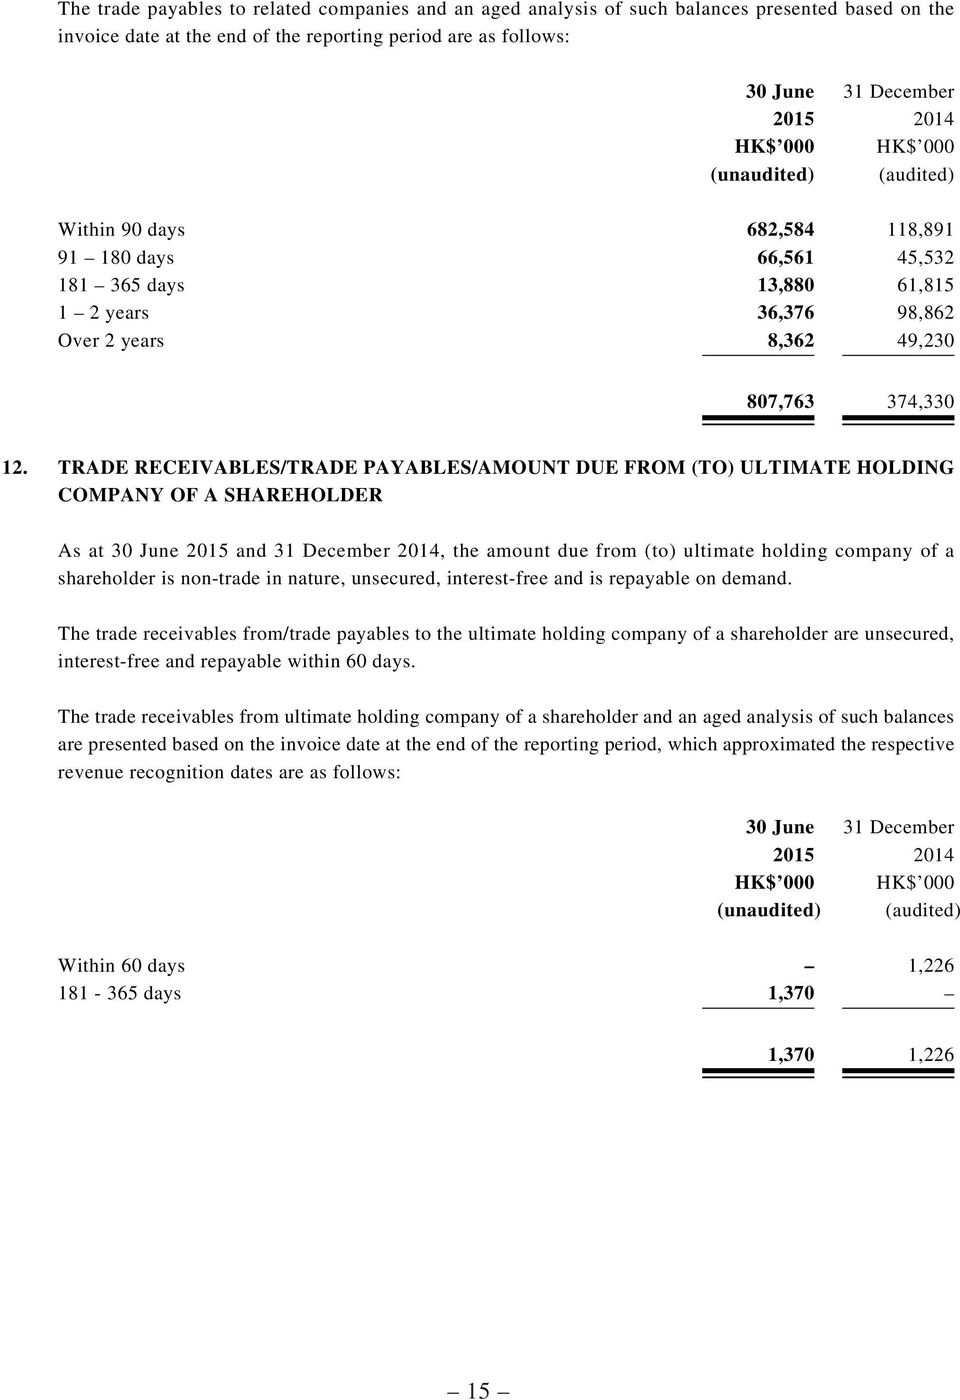 TRADE RECEIVABLES/TRADE PAYABLES/AMOUNT DUE FROM (TO) ULTIMATE HOLDING COMPANY OF A SHAREHOLDER As at 30 June 2015 and 31 December 2014, the amount due from (to) ultimate holding company of a